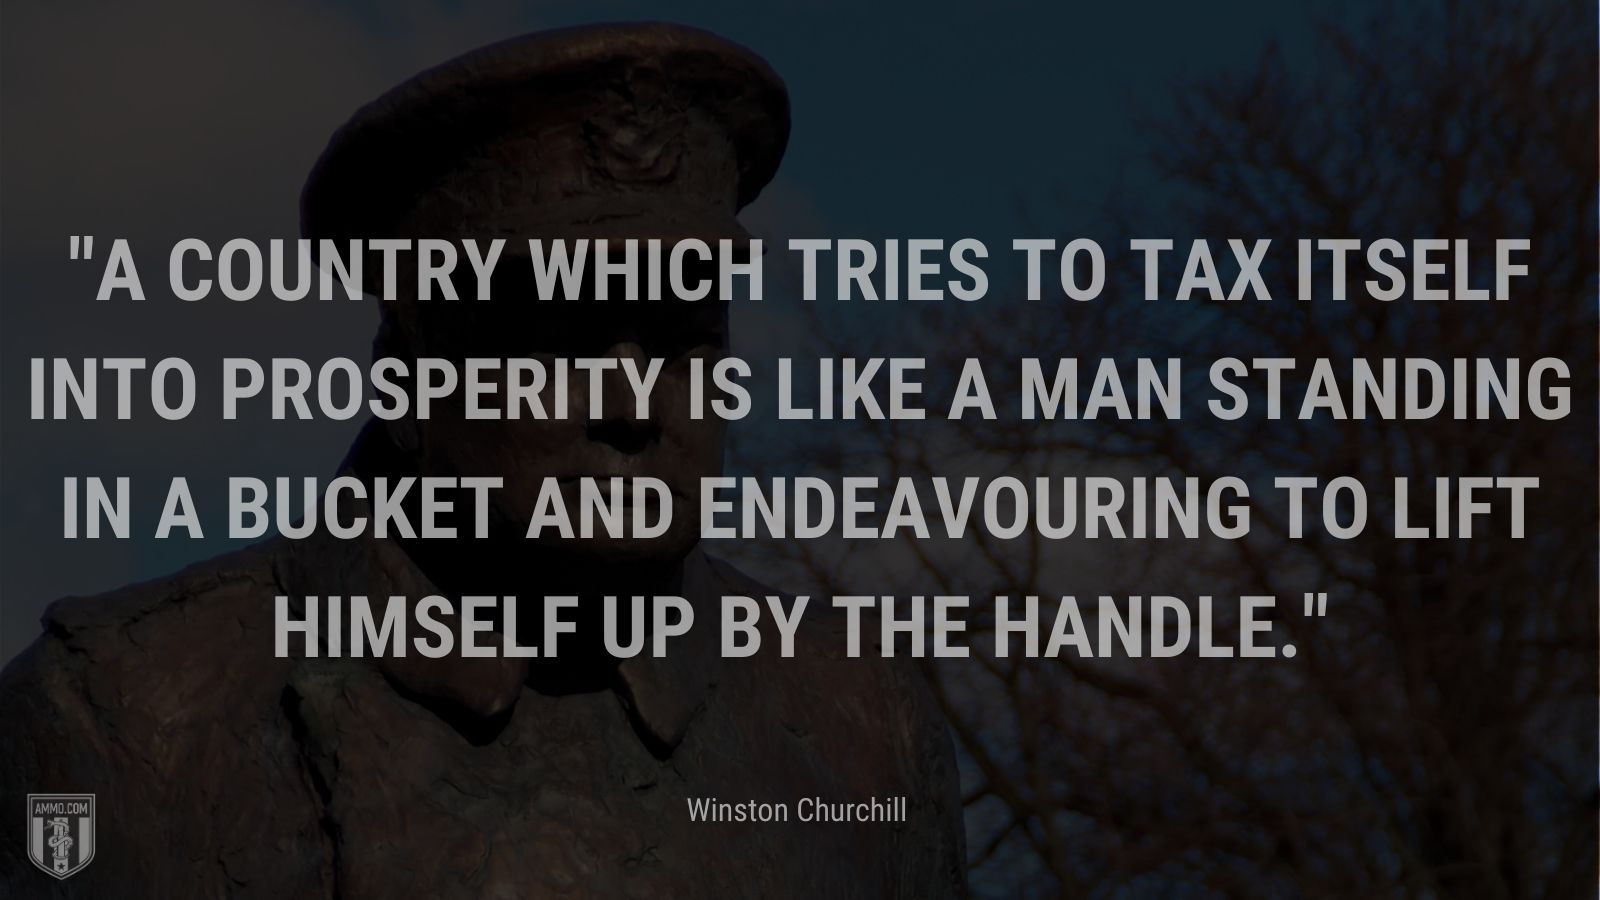 A country which tries to tax itself into prosperity is like a man standing in a bucket and endeavouring to lift himself up by the handle.